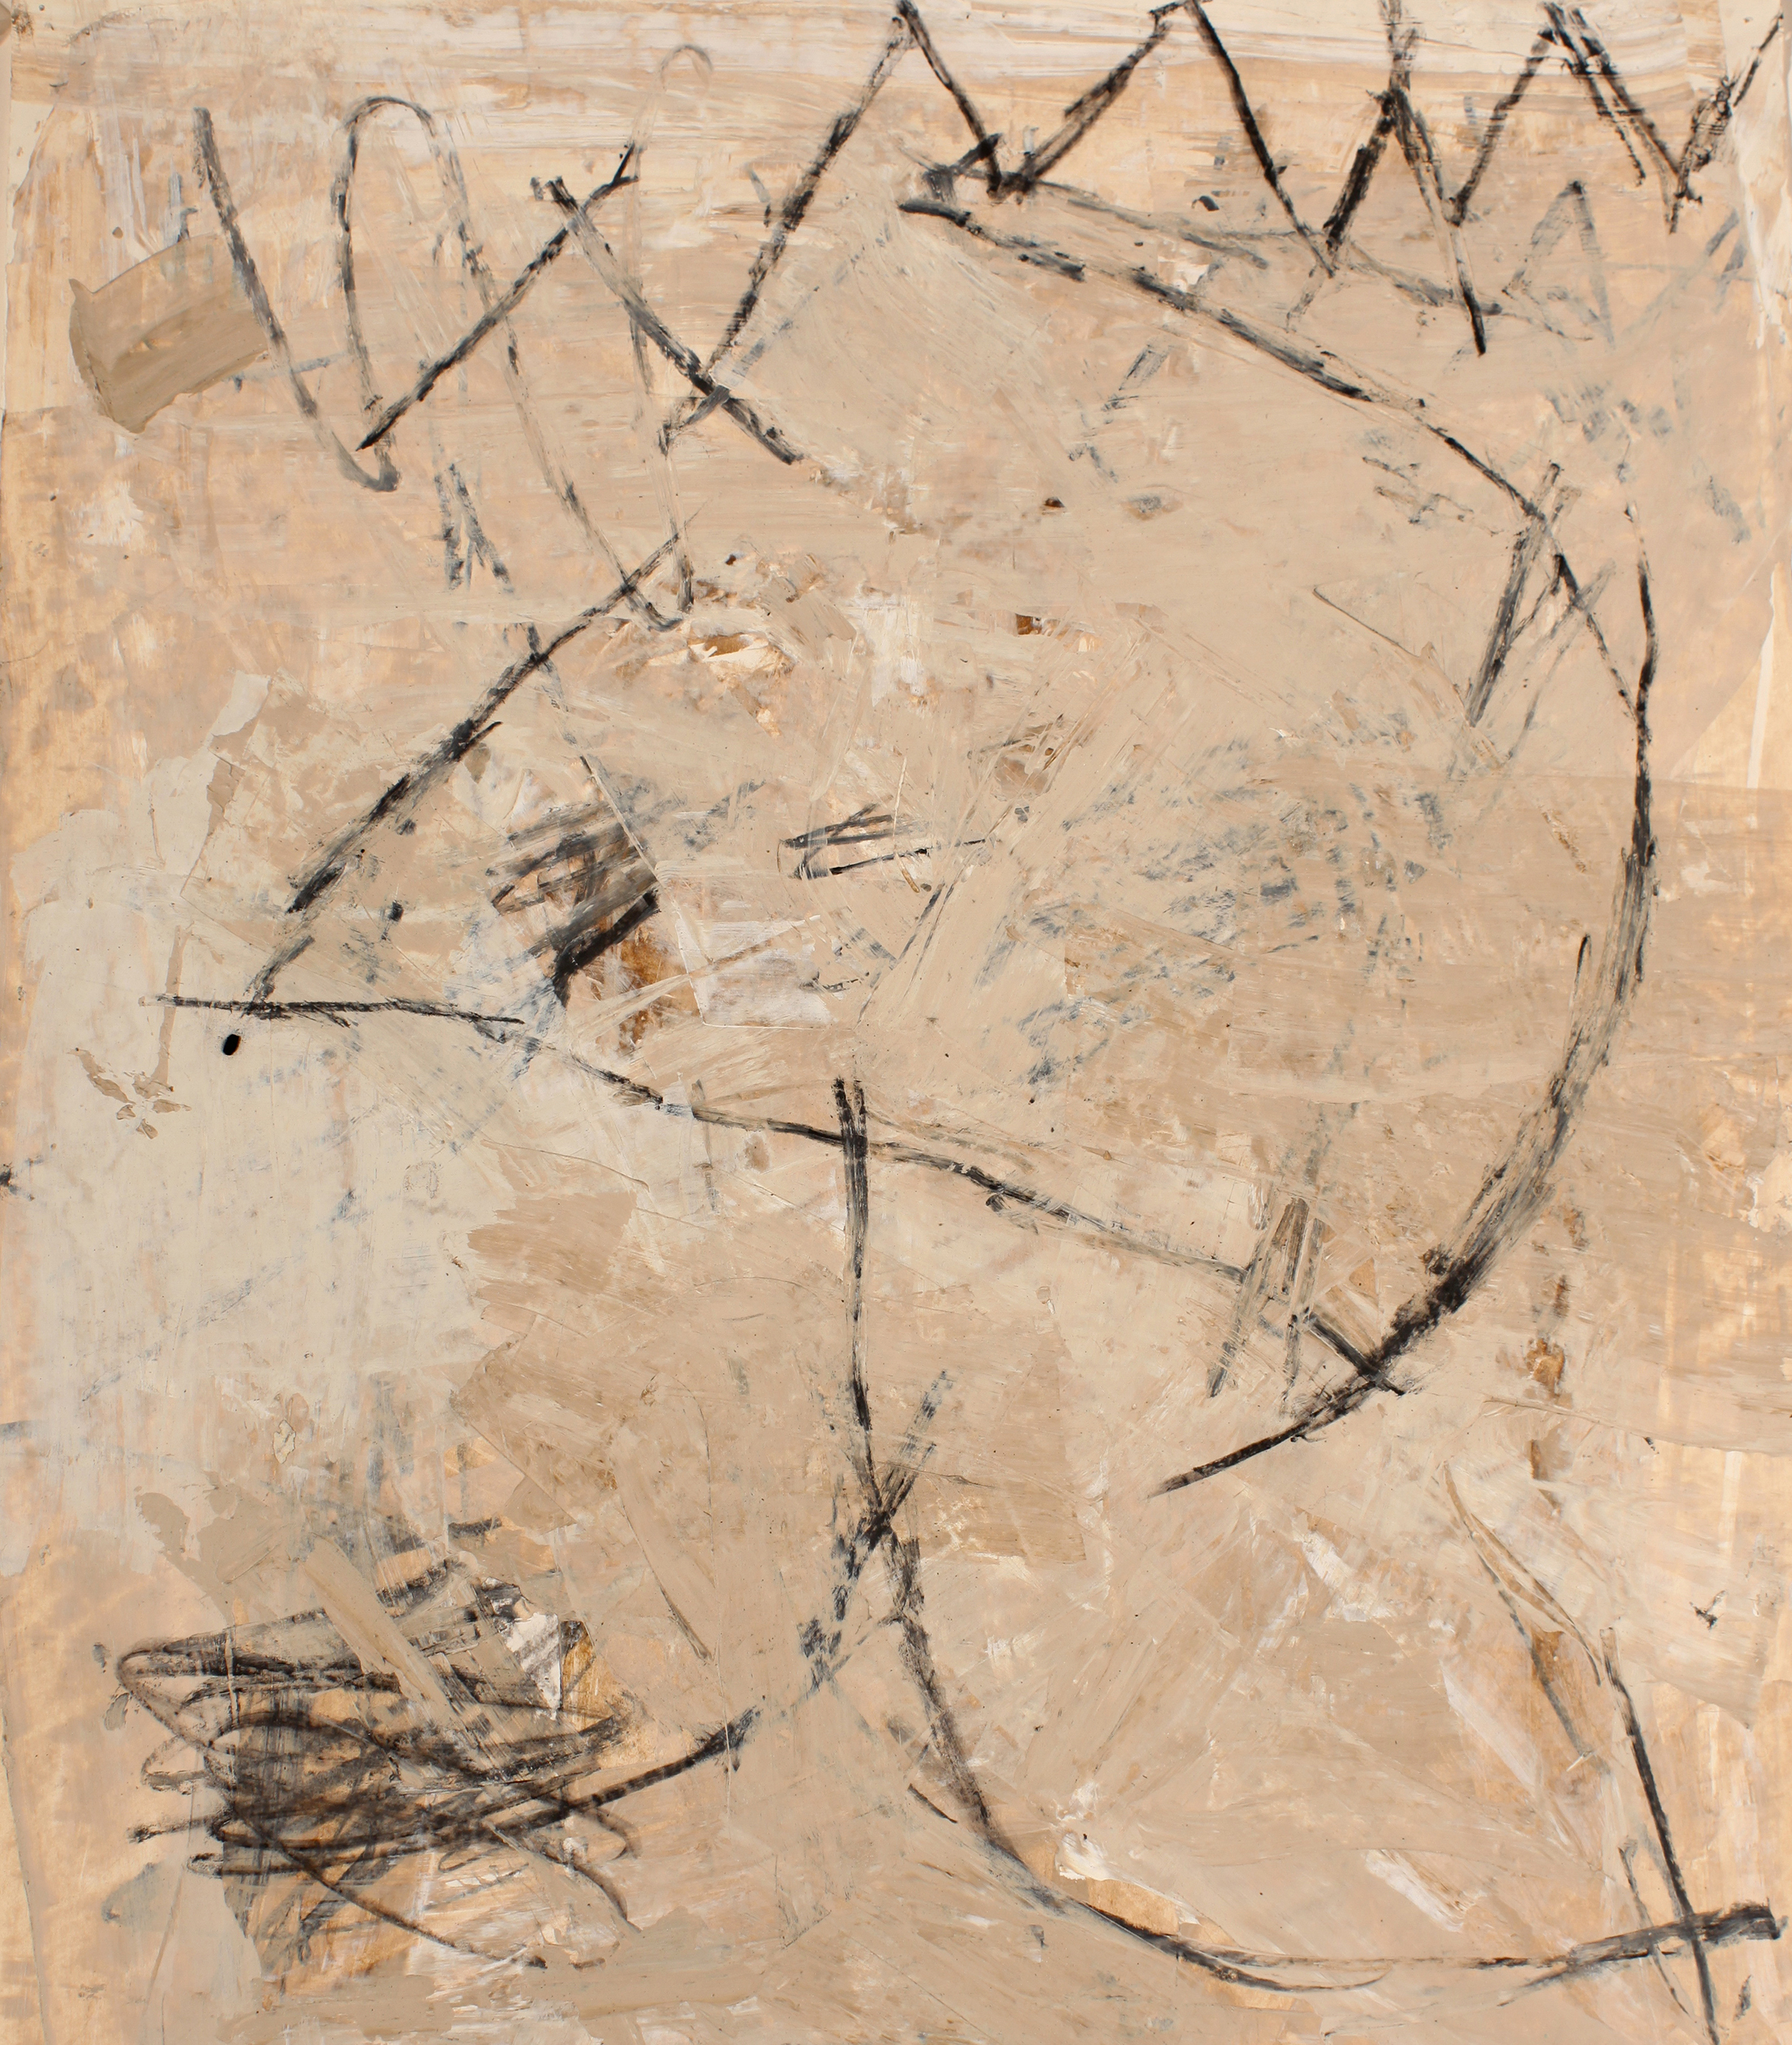 1983_UntitledNo8309_acrylicandcharcoalopaper_26x22_WPNF051.jpg